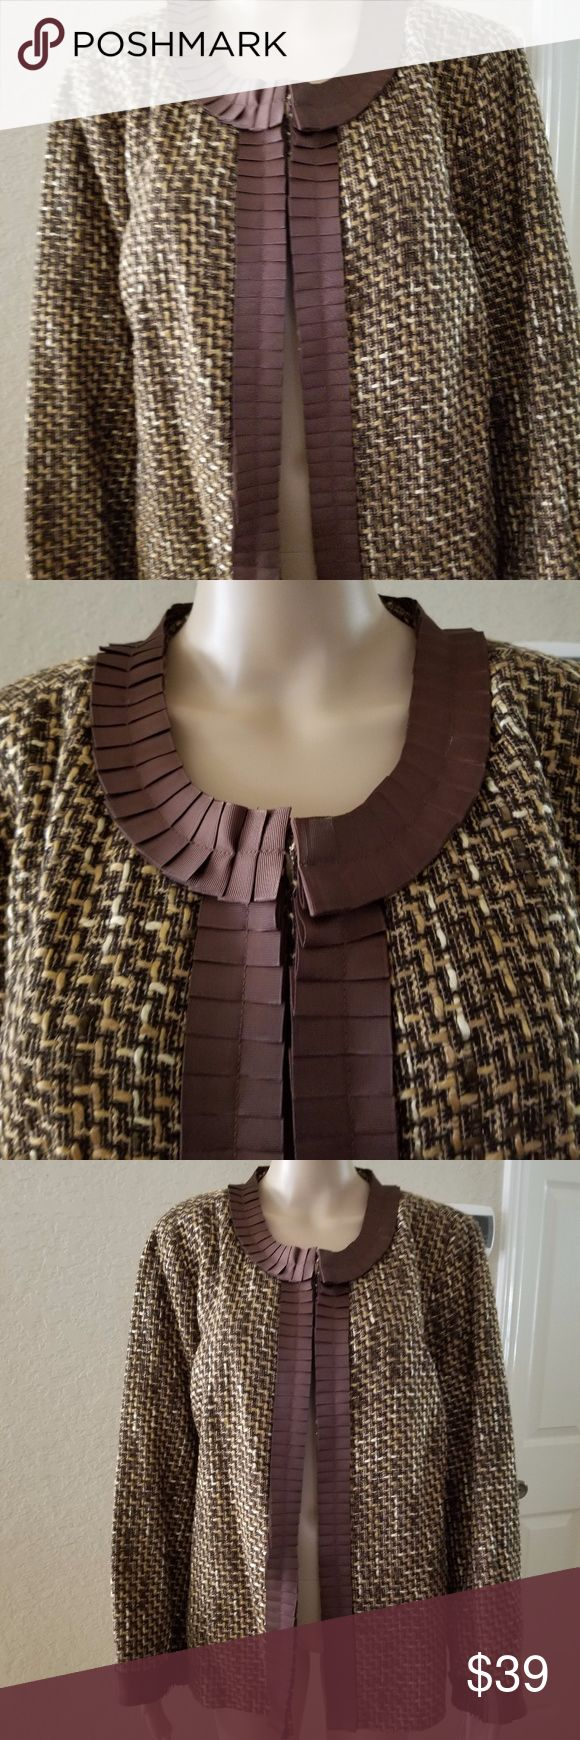 """Scott Taylor women's tweed Jacket For your consideration:  Scott Taylor women's tweed Jacket Open front   Color Brown/ camel  Size 1X   Condition New With Tag  Style 8W644251  Measurement approximately:  Underarm to underarm 25""""  Sleeve 23.5""""  Front length from shoulder to hem 25"""" Scott Taylor Jackets & Coats Blazers"""